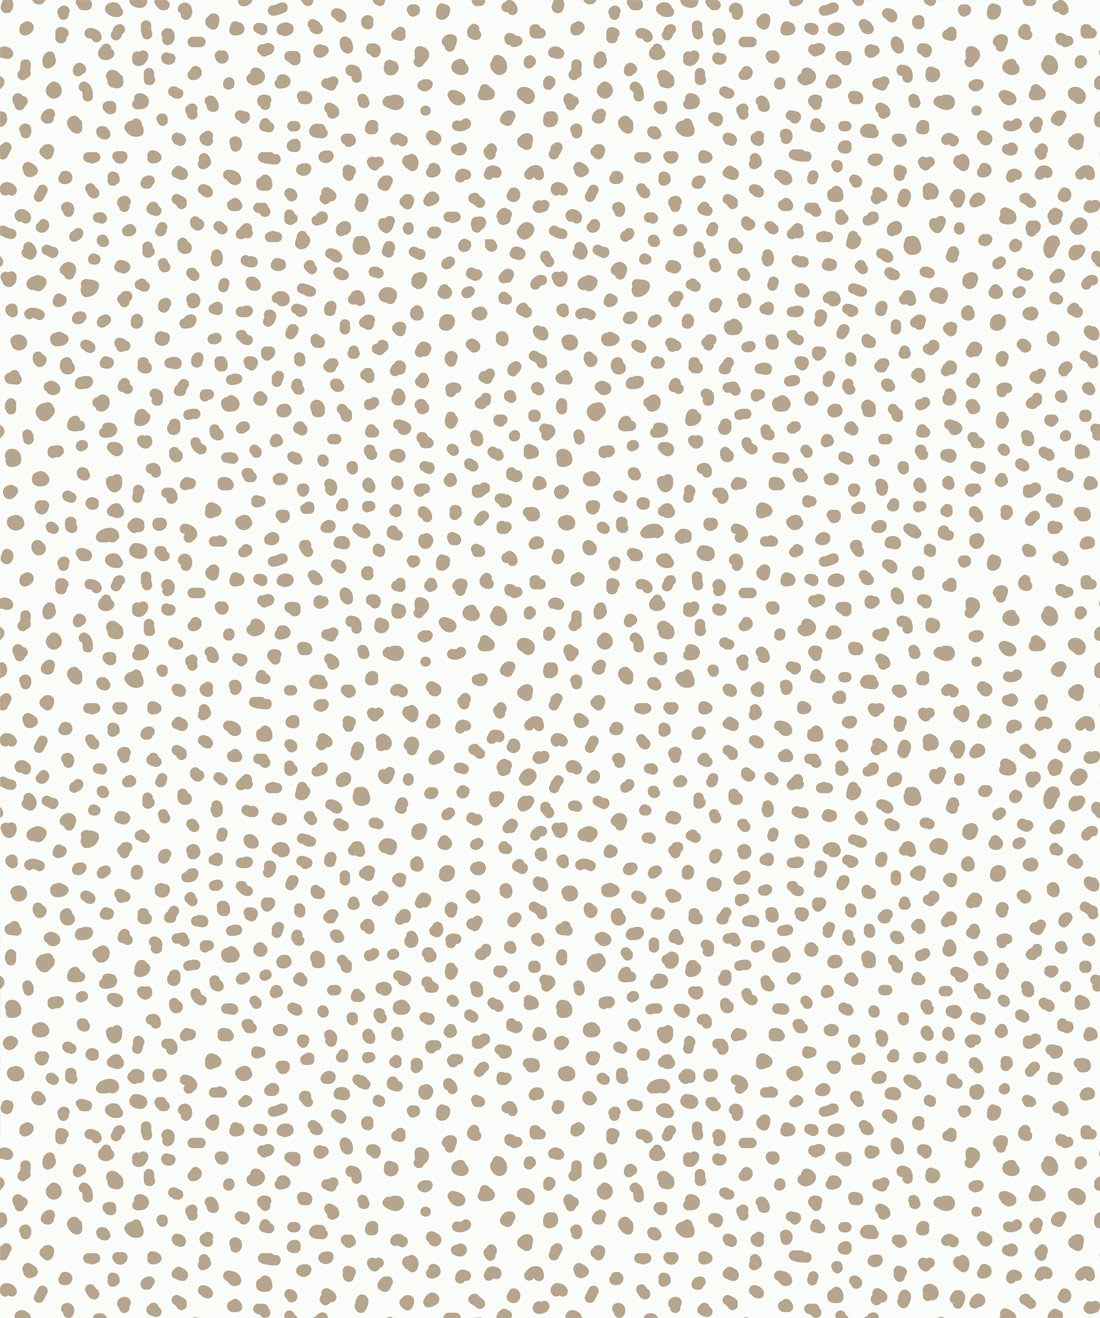 Huddy's Dots Taupe